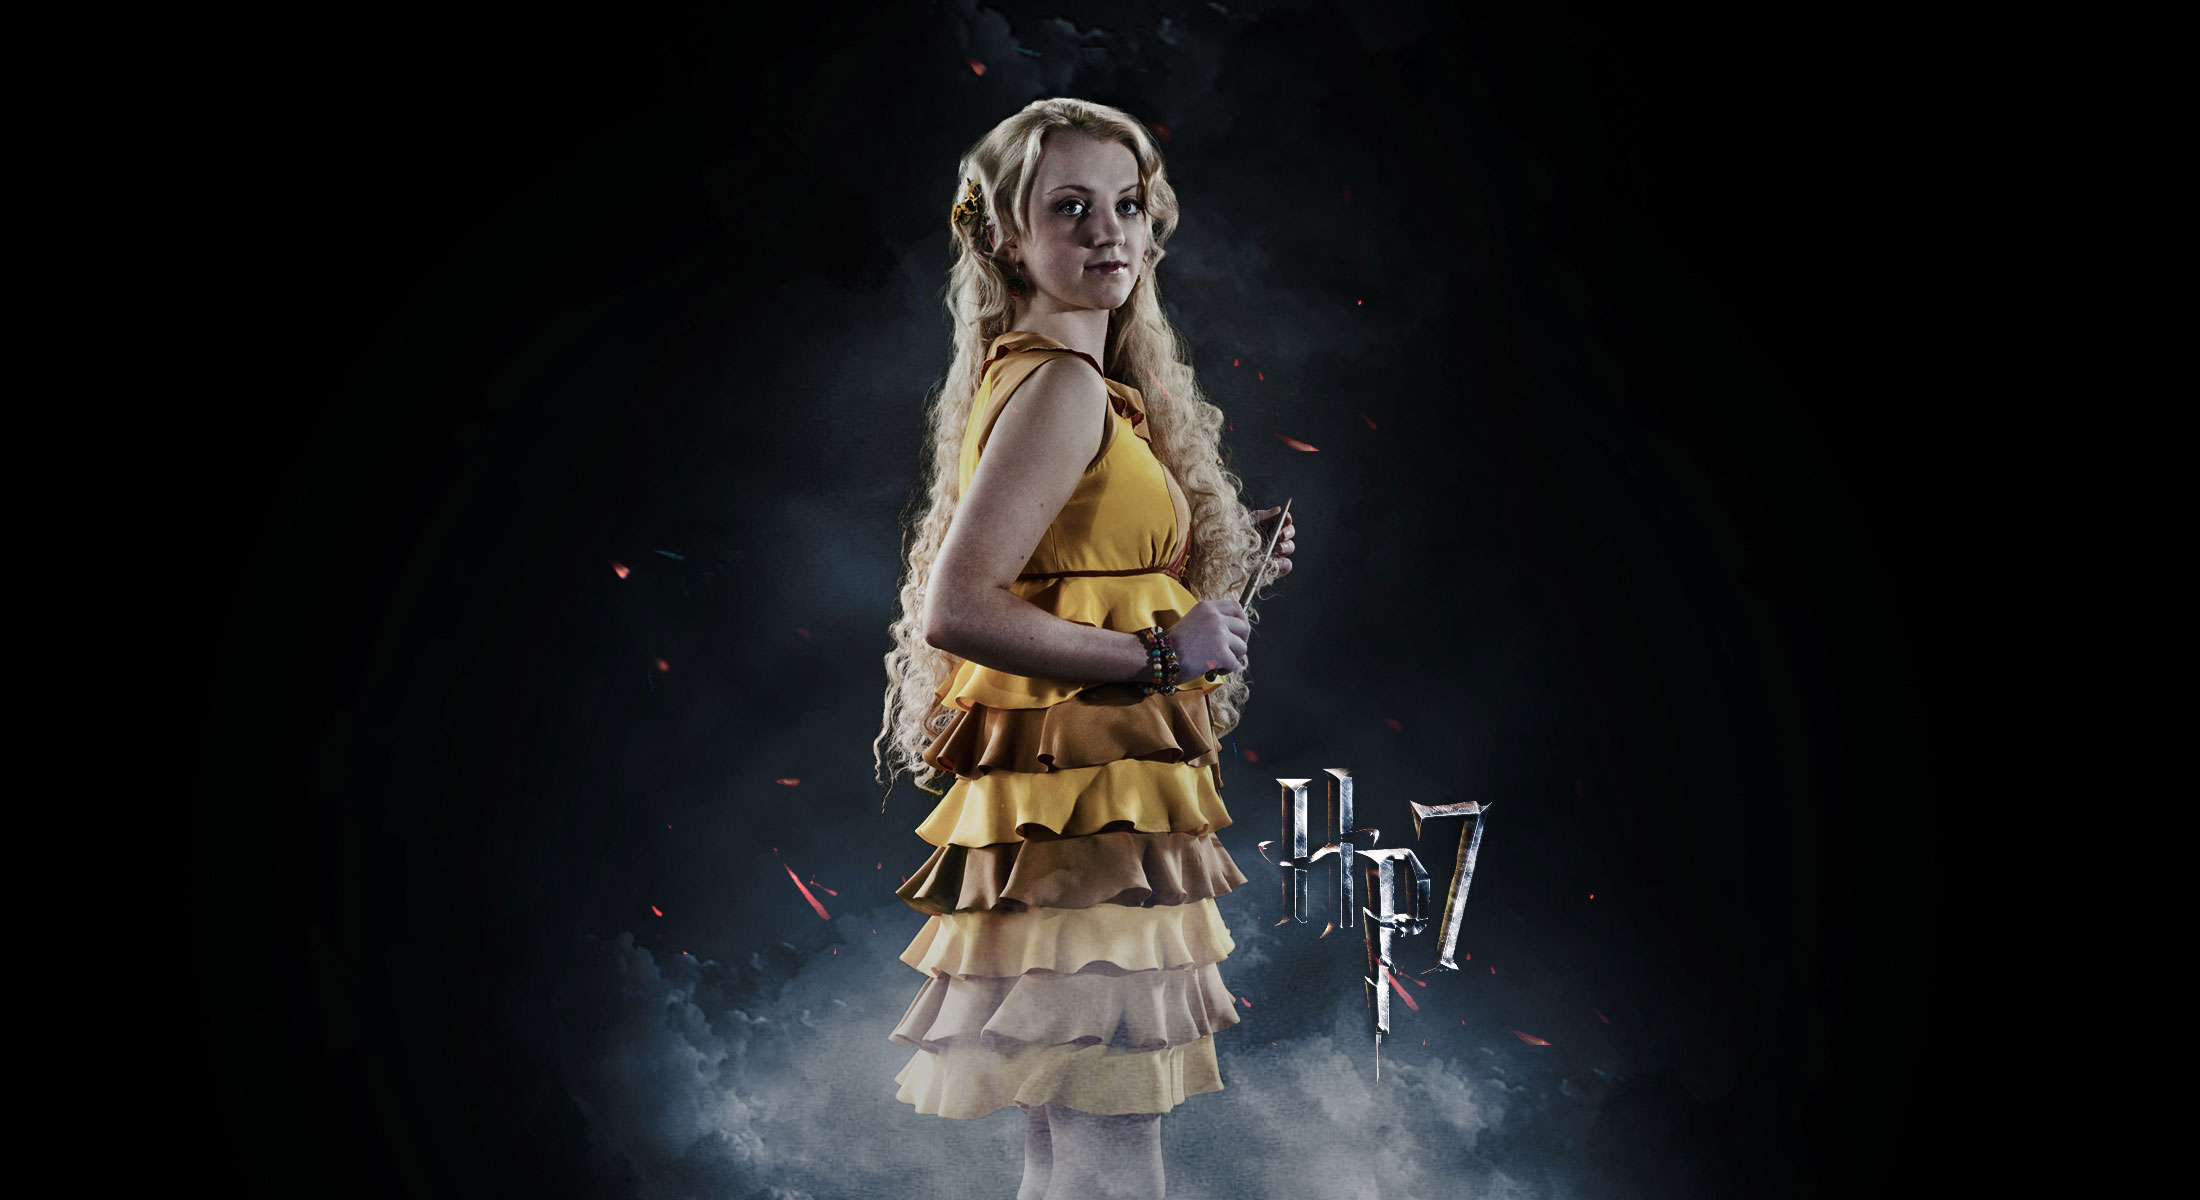 Harry Potter Harry Potter And The Deathly Hallows Luna Lovegood